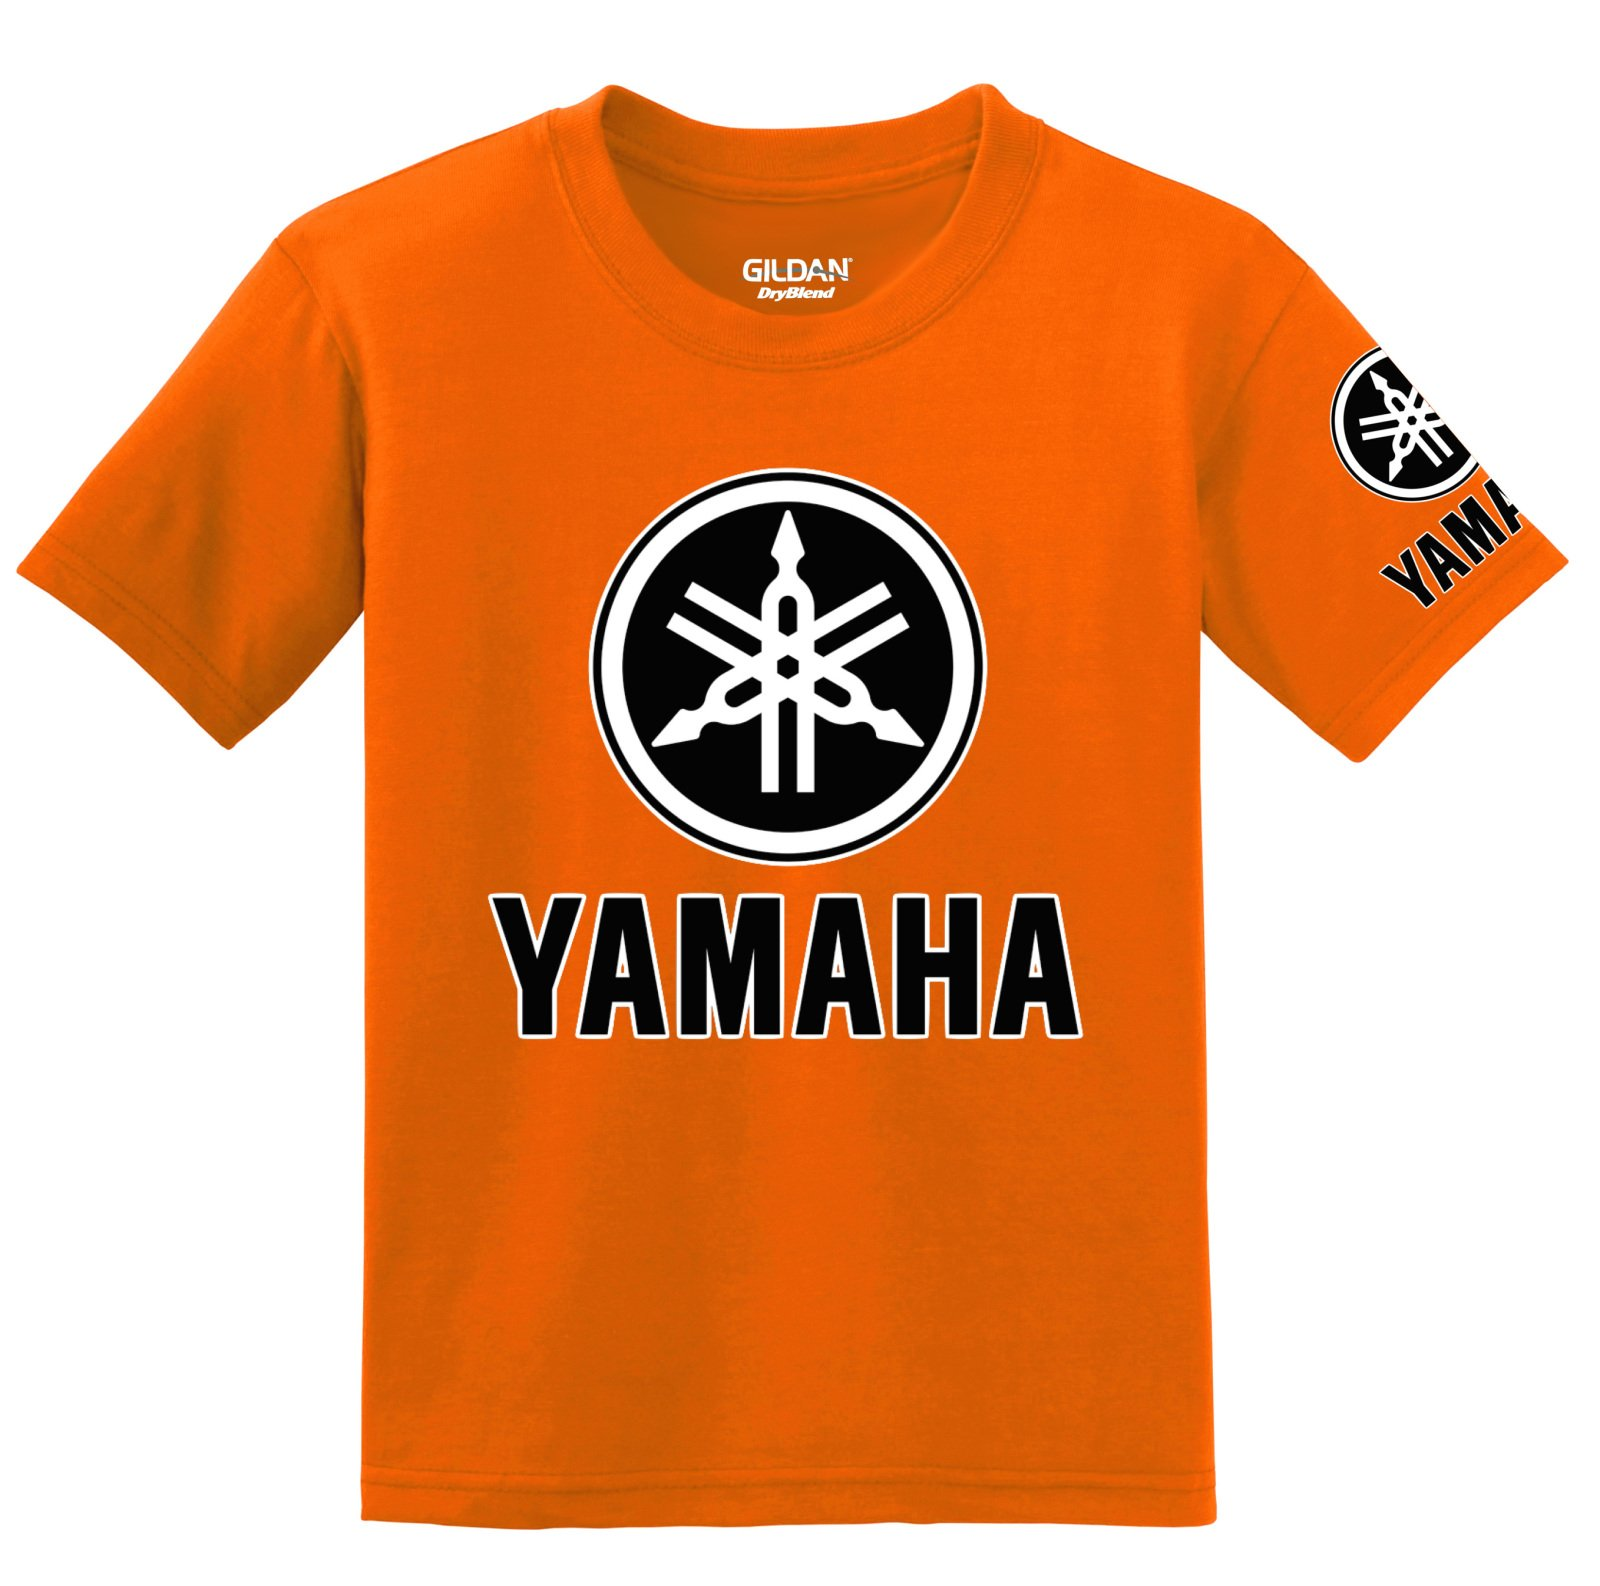 Yamaha Logo with Sleeve T-Shirt, Large Orange